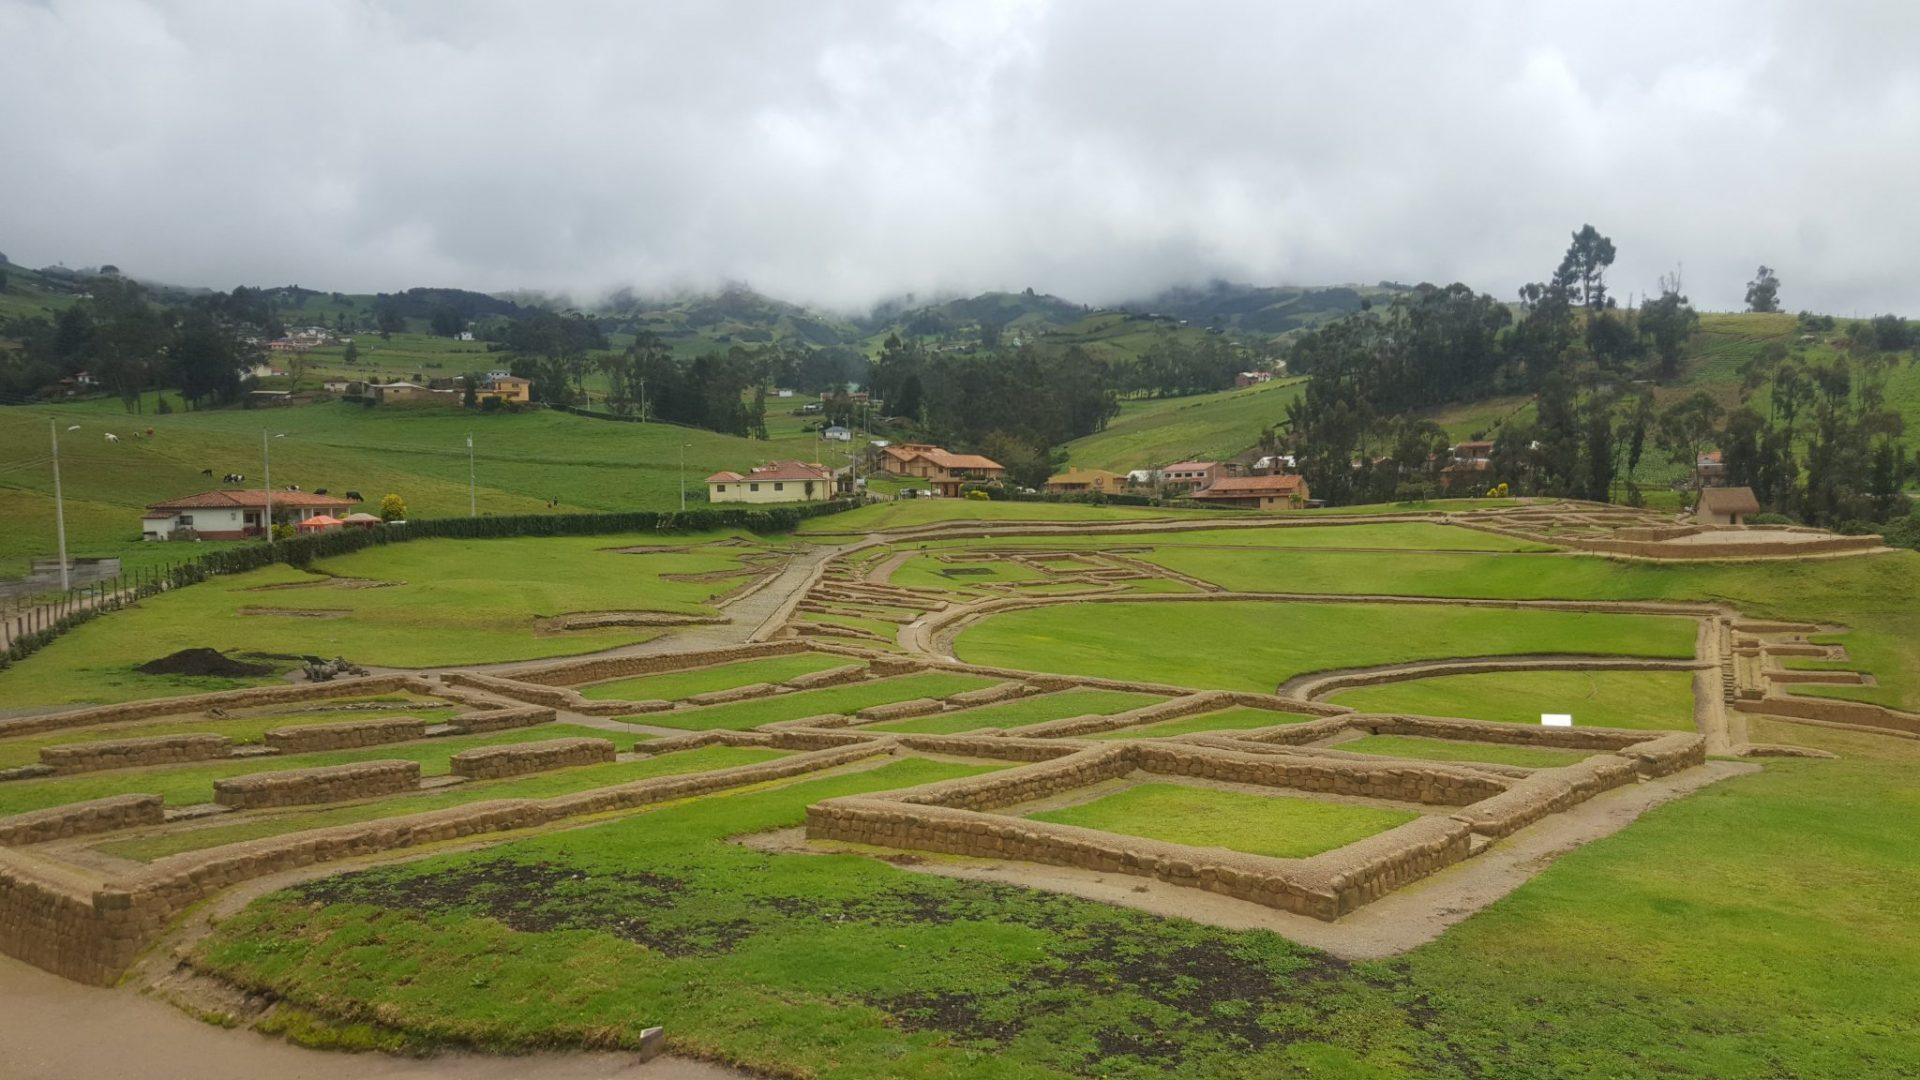 stone terraces of the Ingapirca ruins in Ecuador